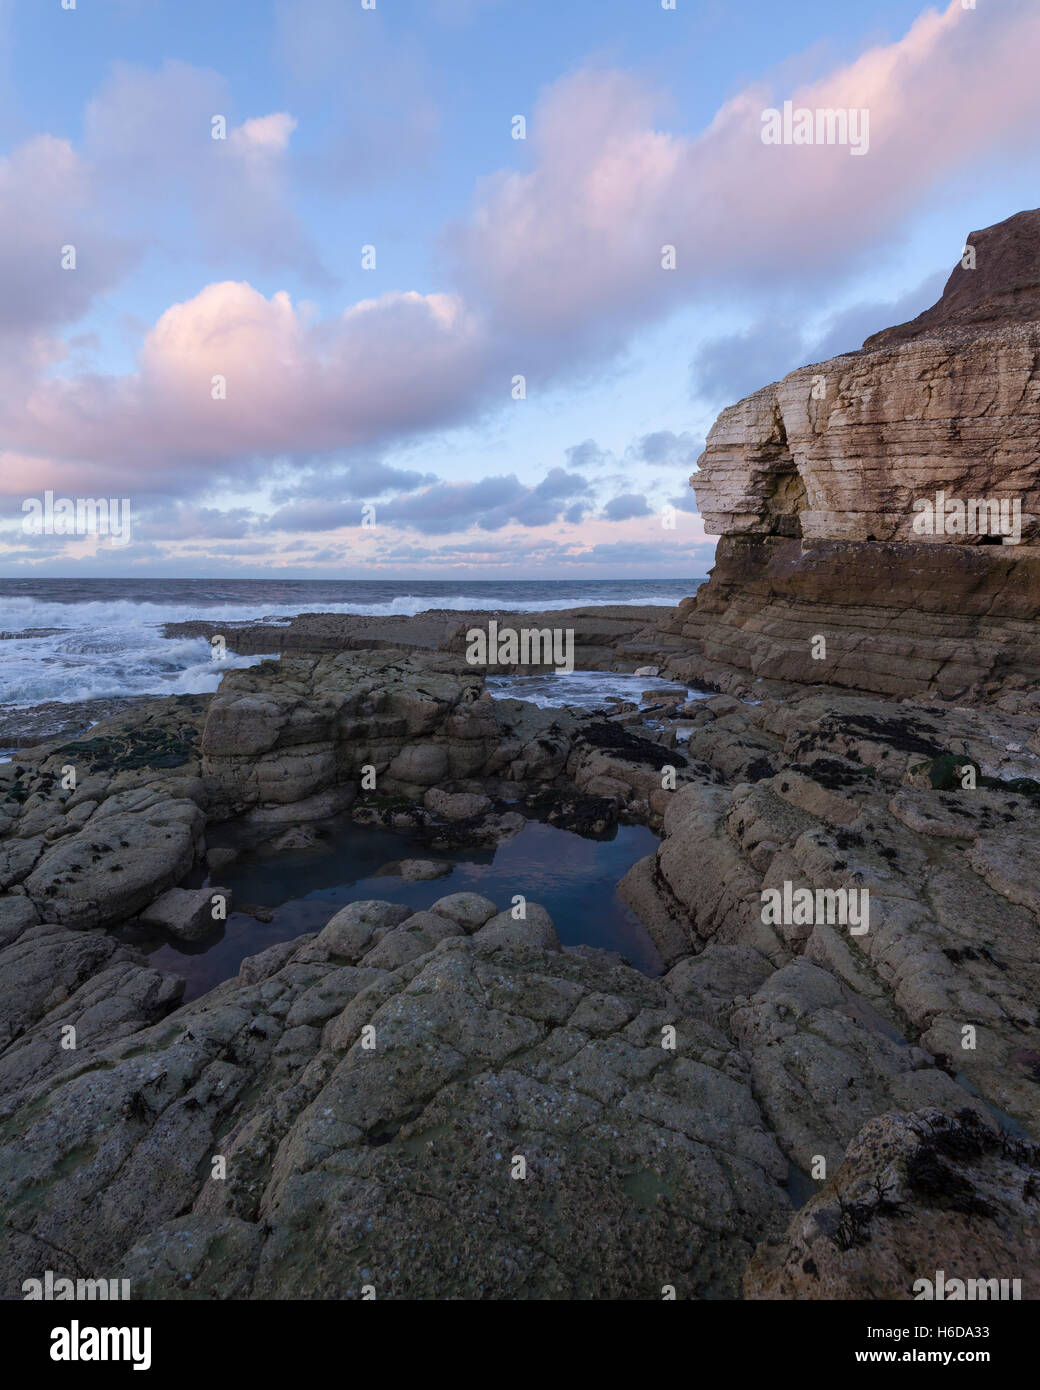 View from the rocks at Thornwick Bay nearing sunset, east Yorkshire, UK Stock Photo